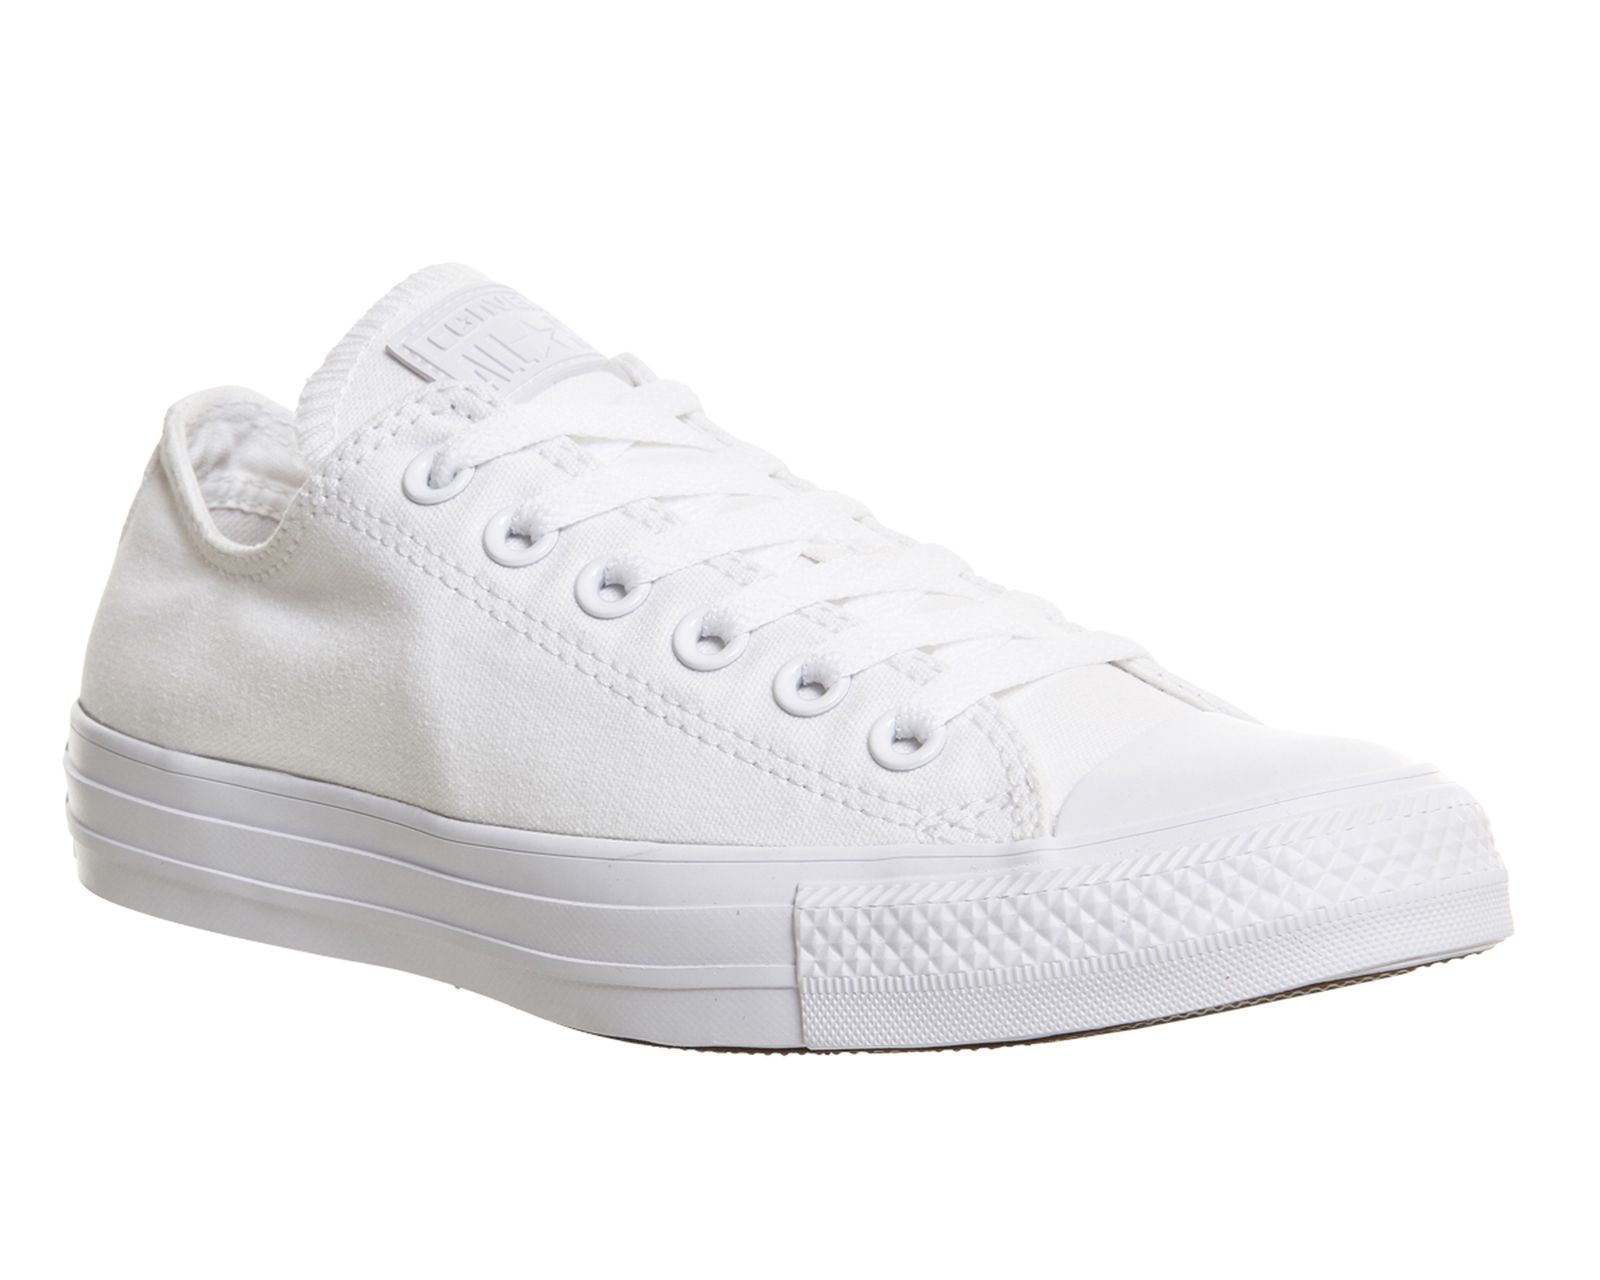 all white converse double tap to zoom into the image. converse, all star low, white ... IRPYFDO